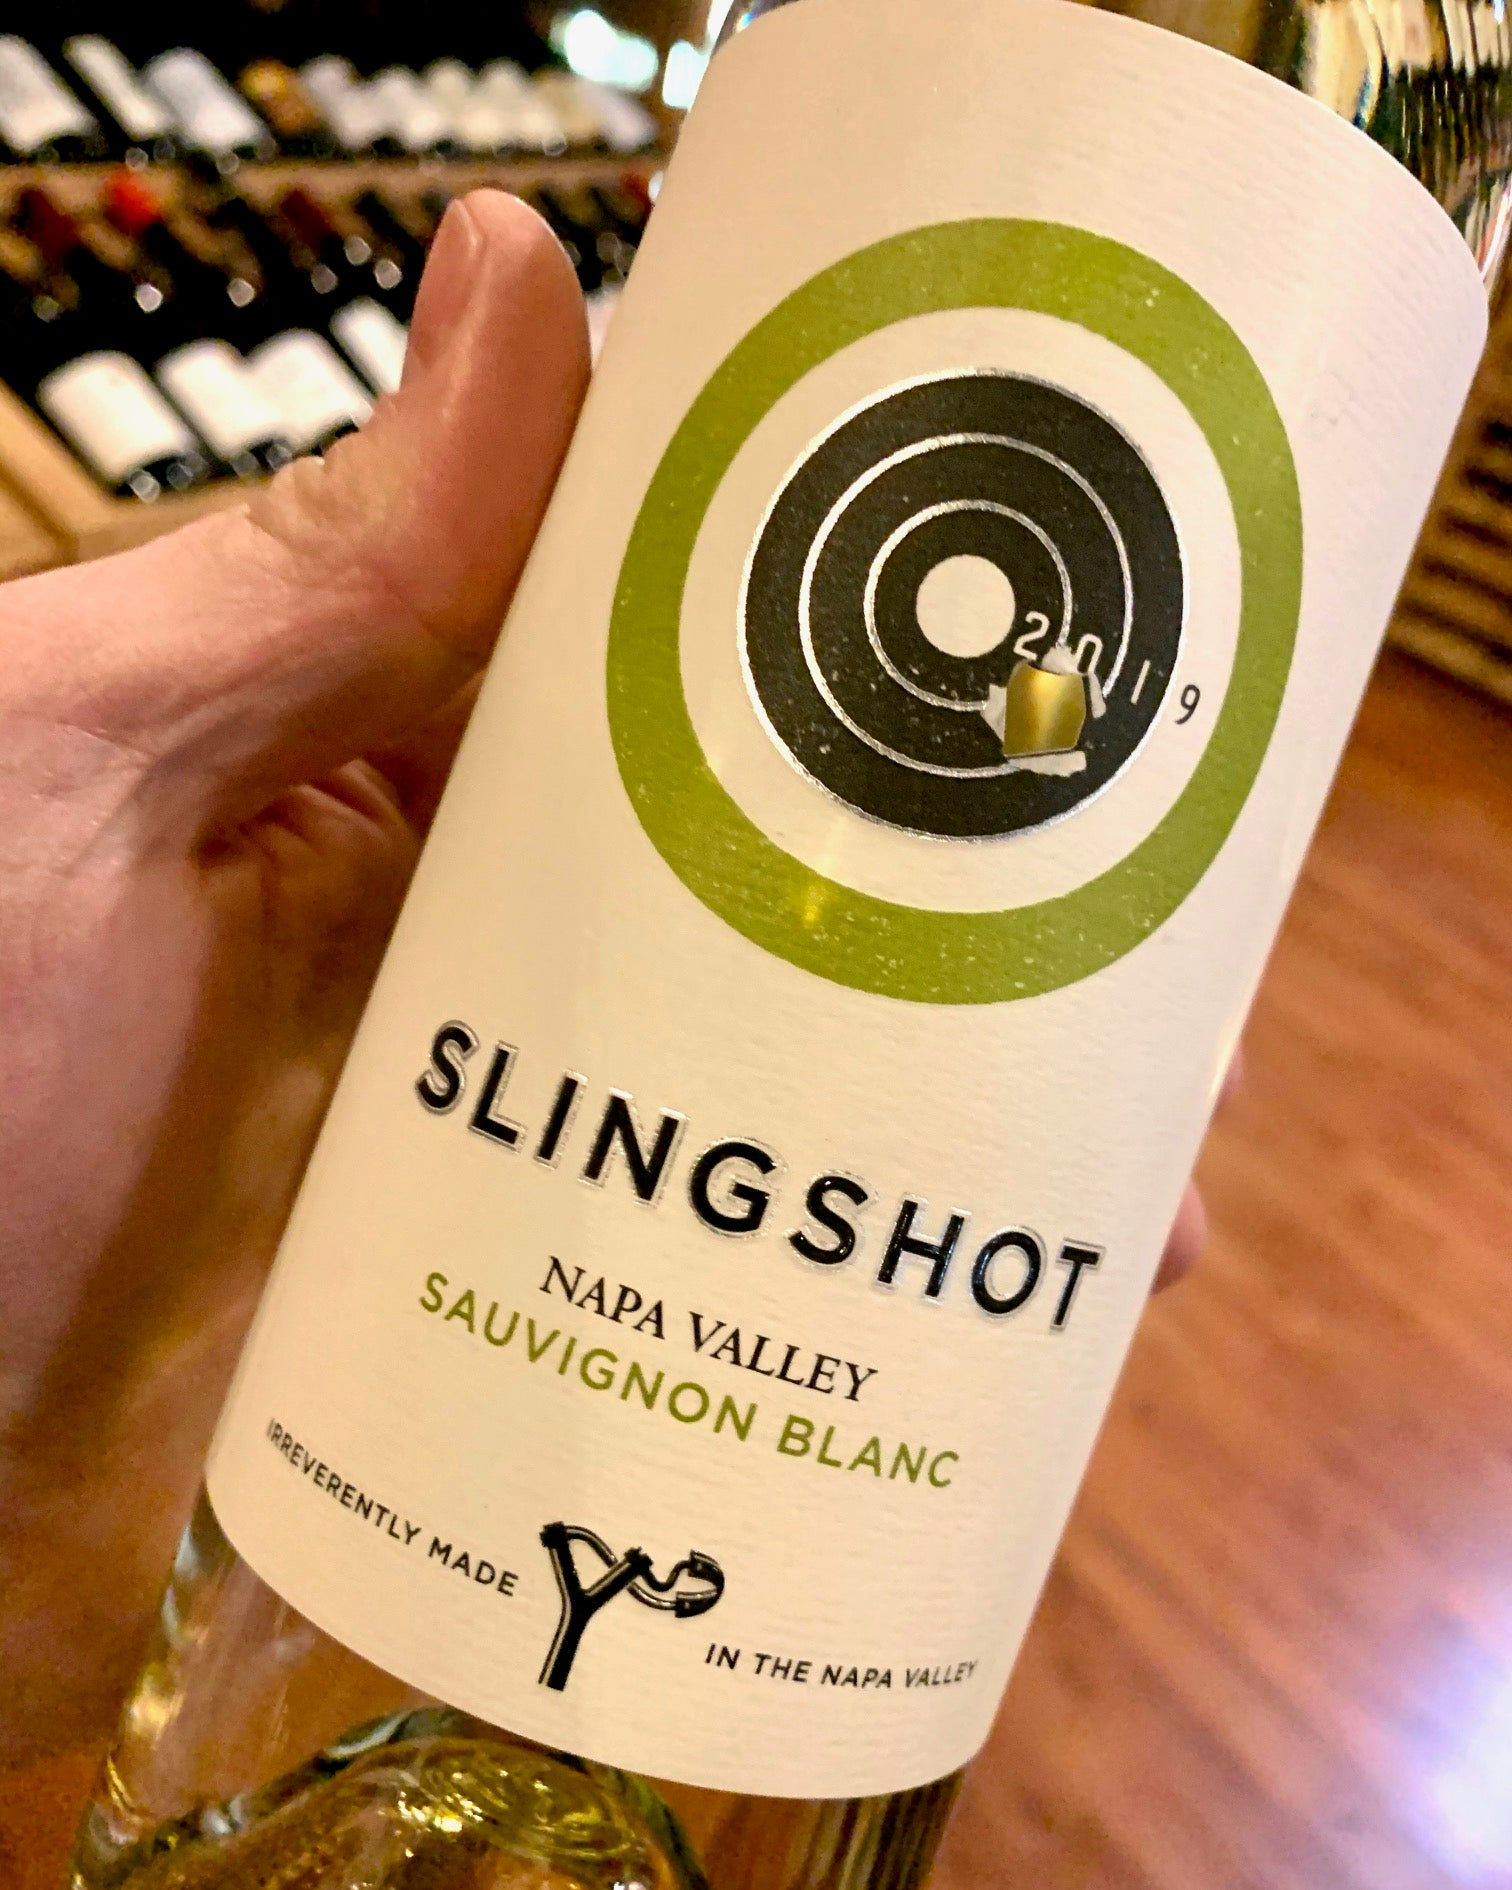 2019 Slingshot Sauvignon Blanc - Napa Valley 750ml